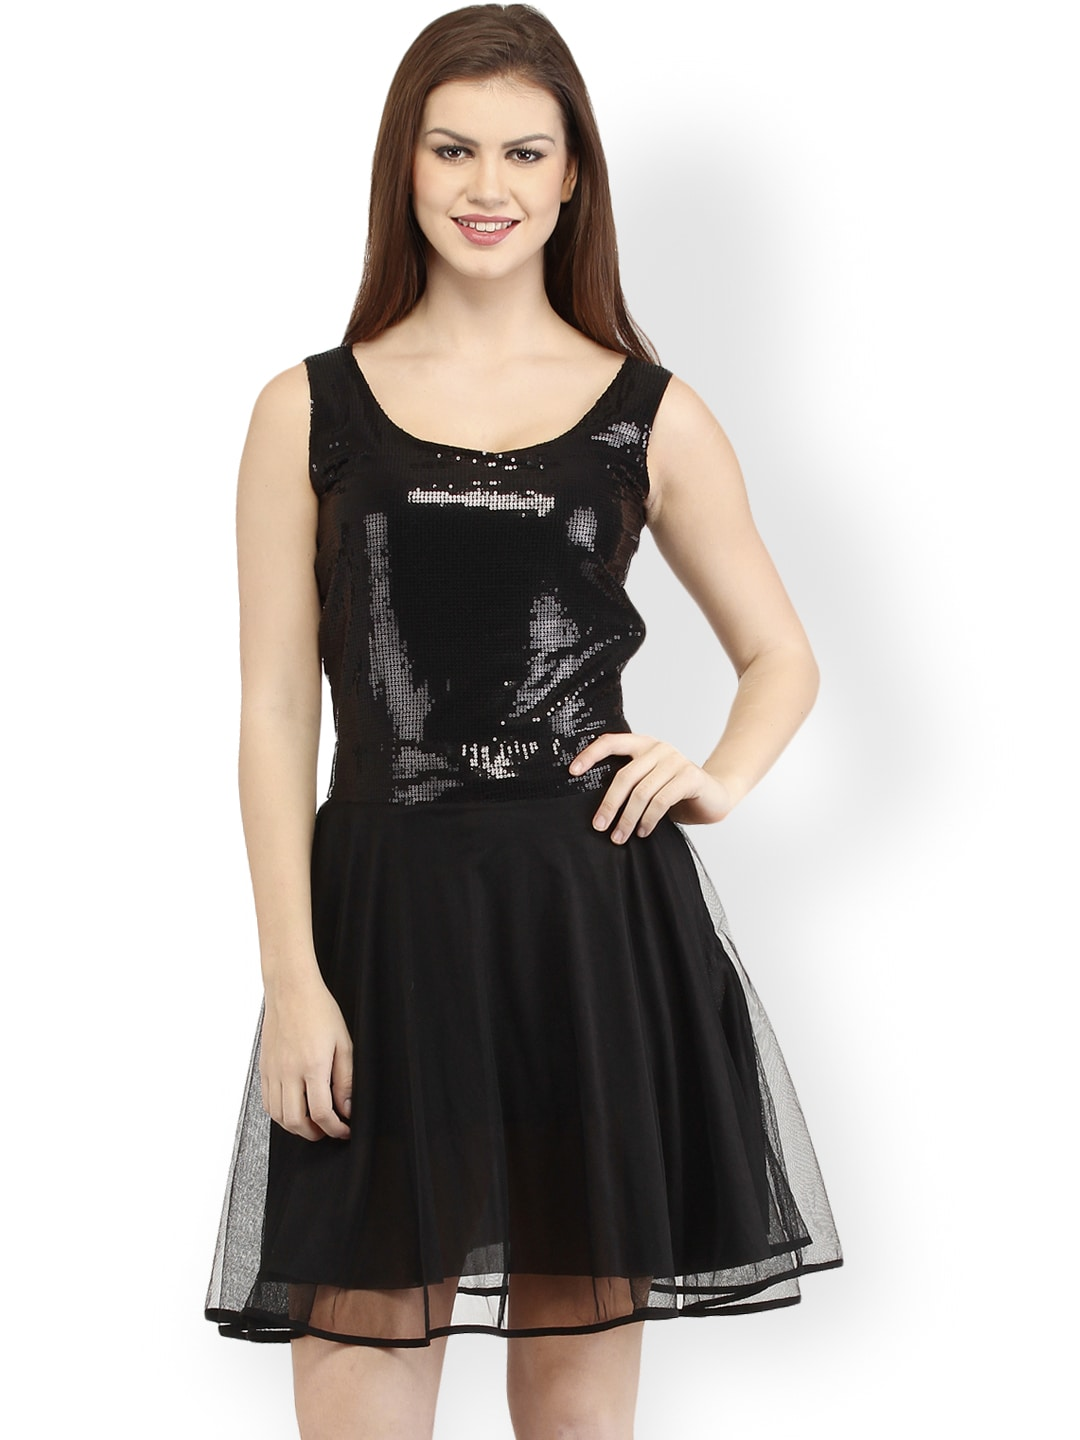 Cation Black Sequinned Fit & Flare Dress